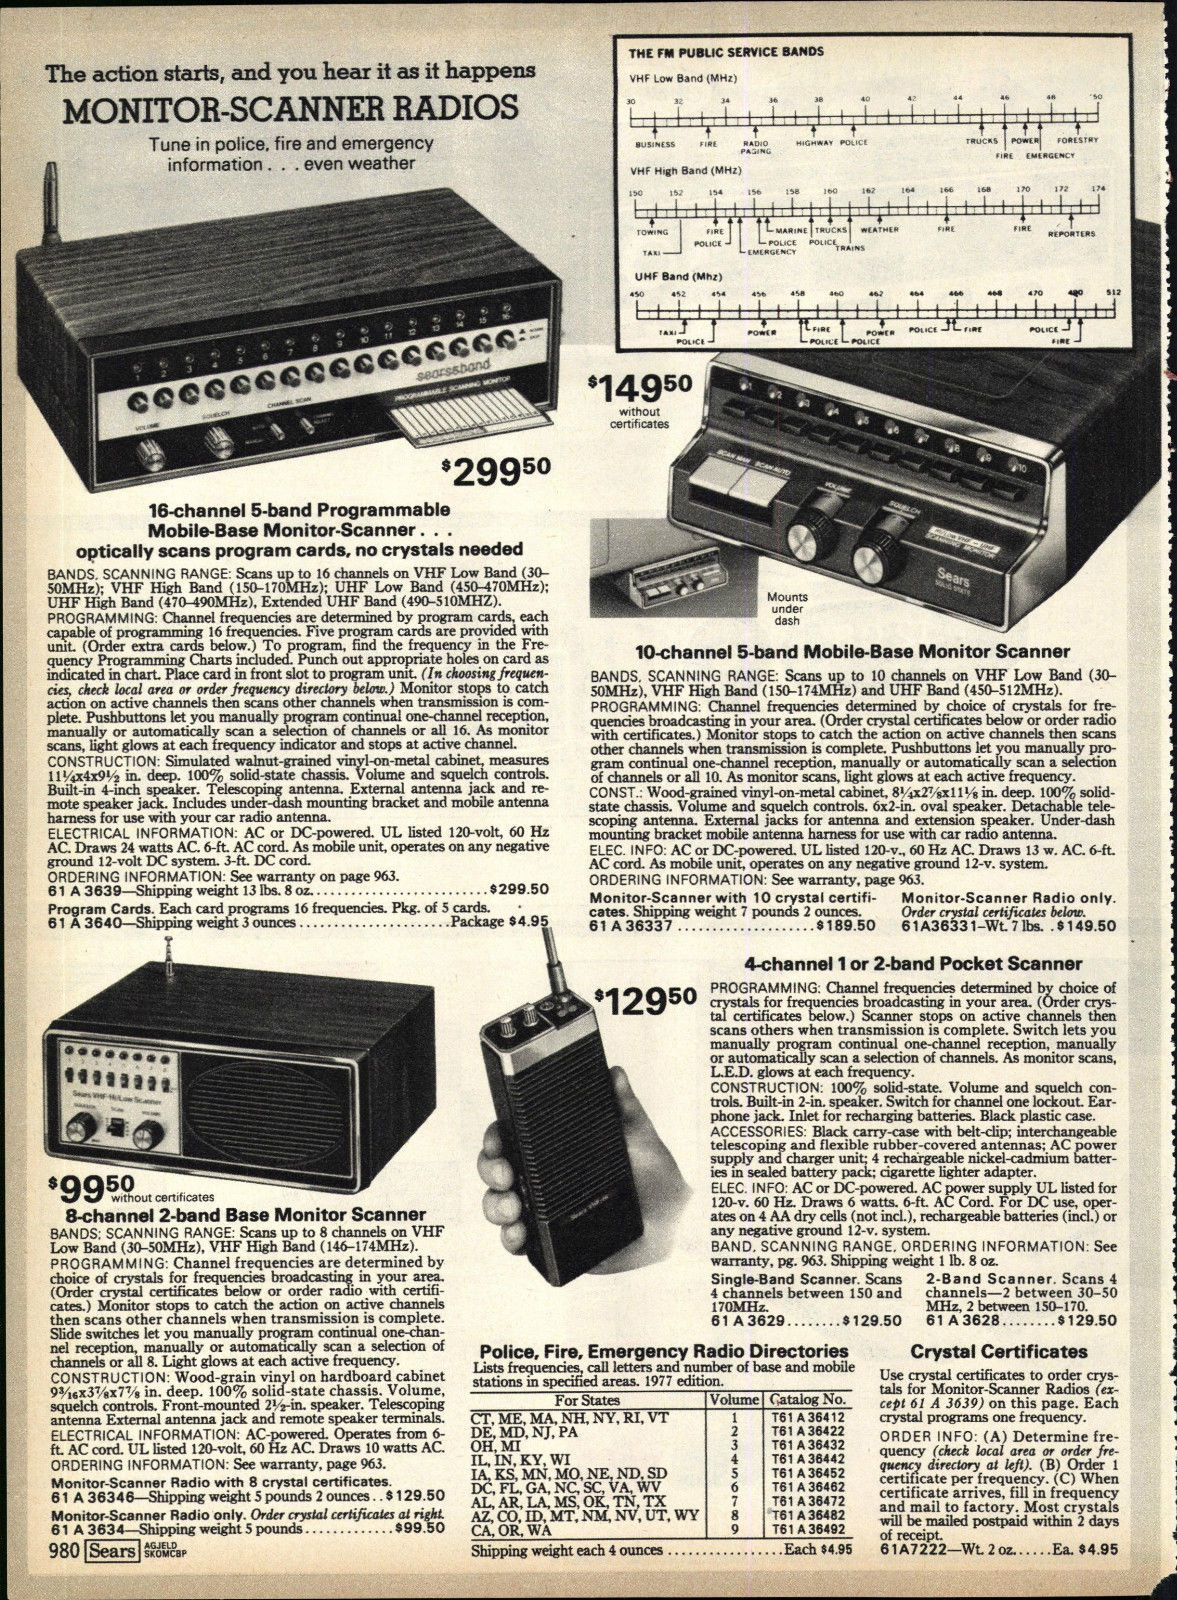 1977 Sears Spring Amp Summer Catalog 1432 Pages On Dvd Pdf